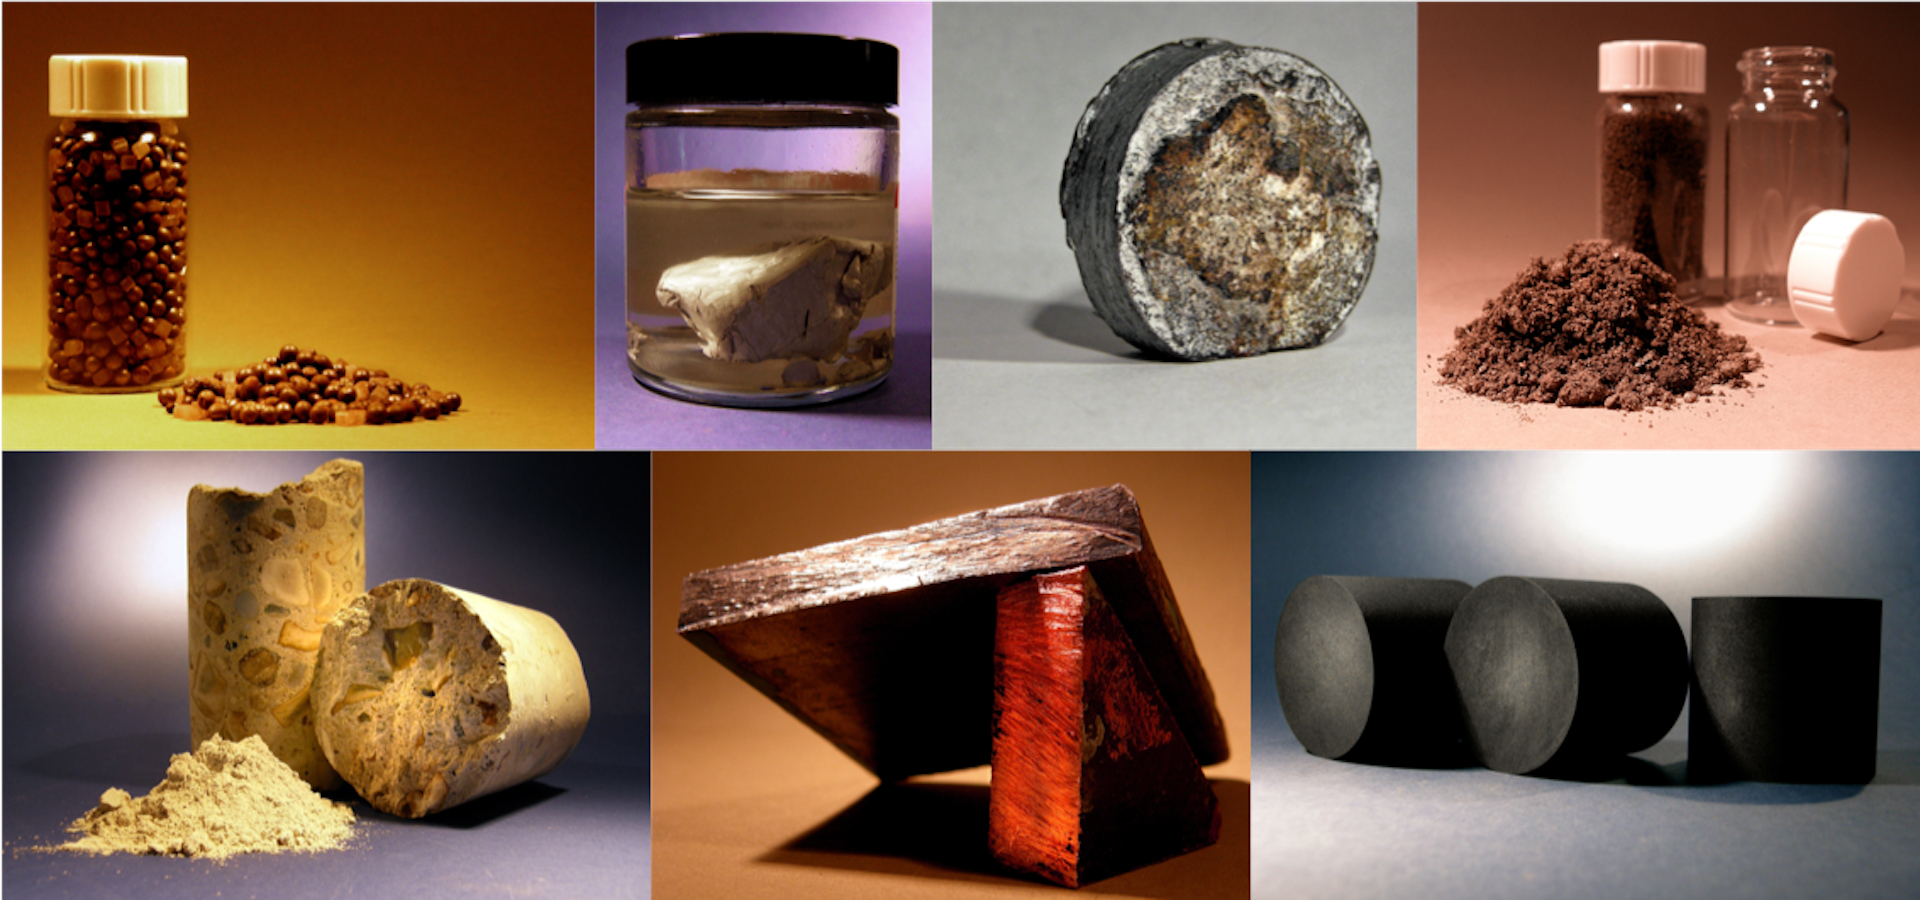 Composite image of various samples